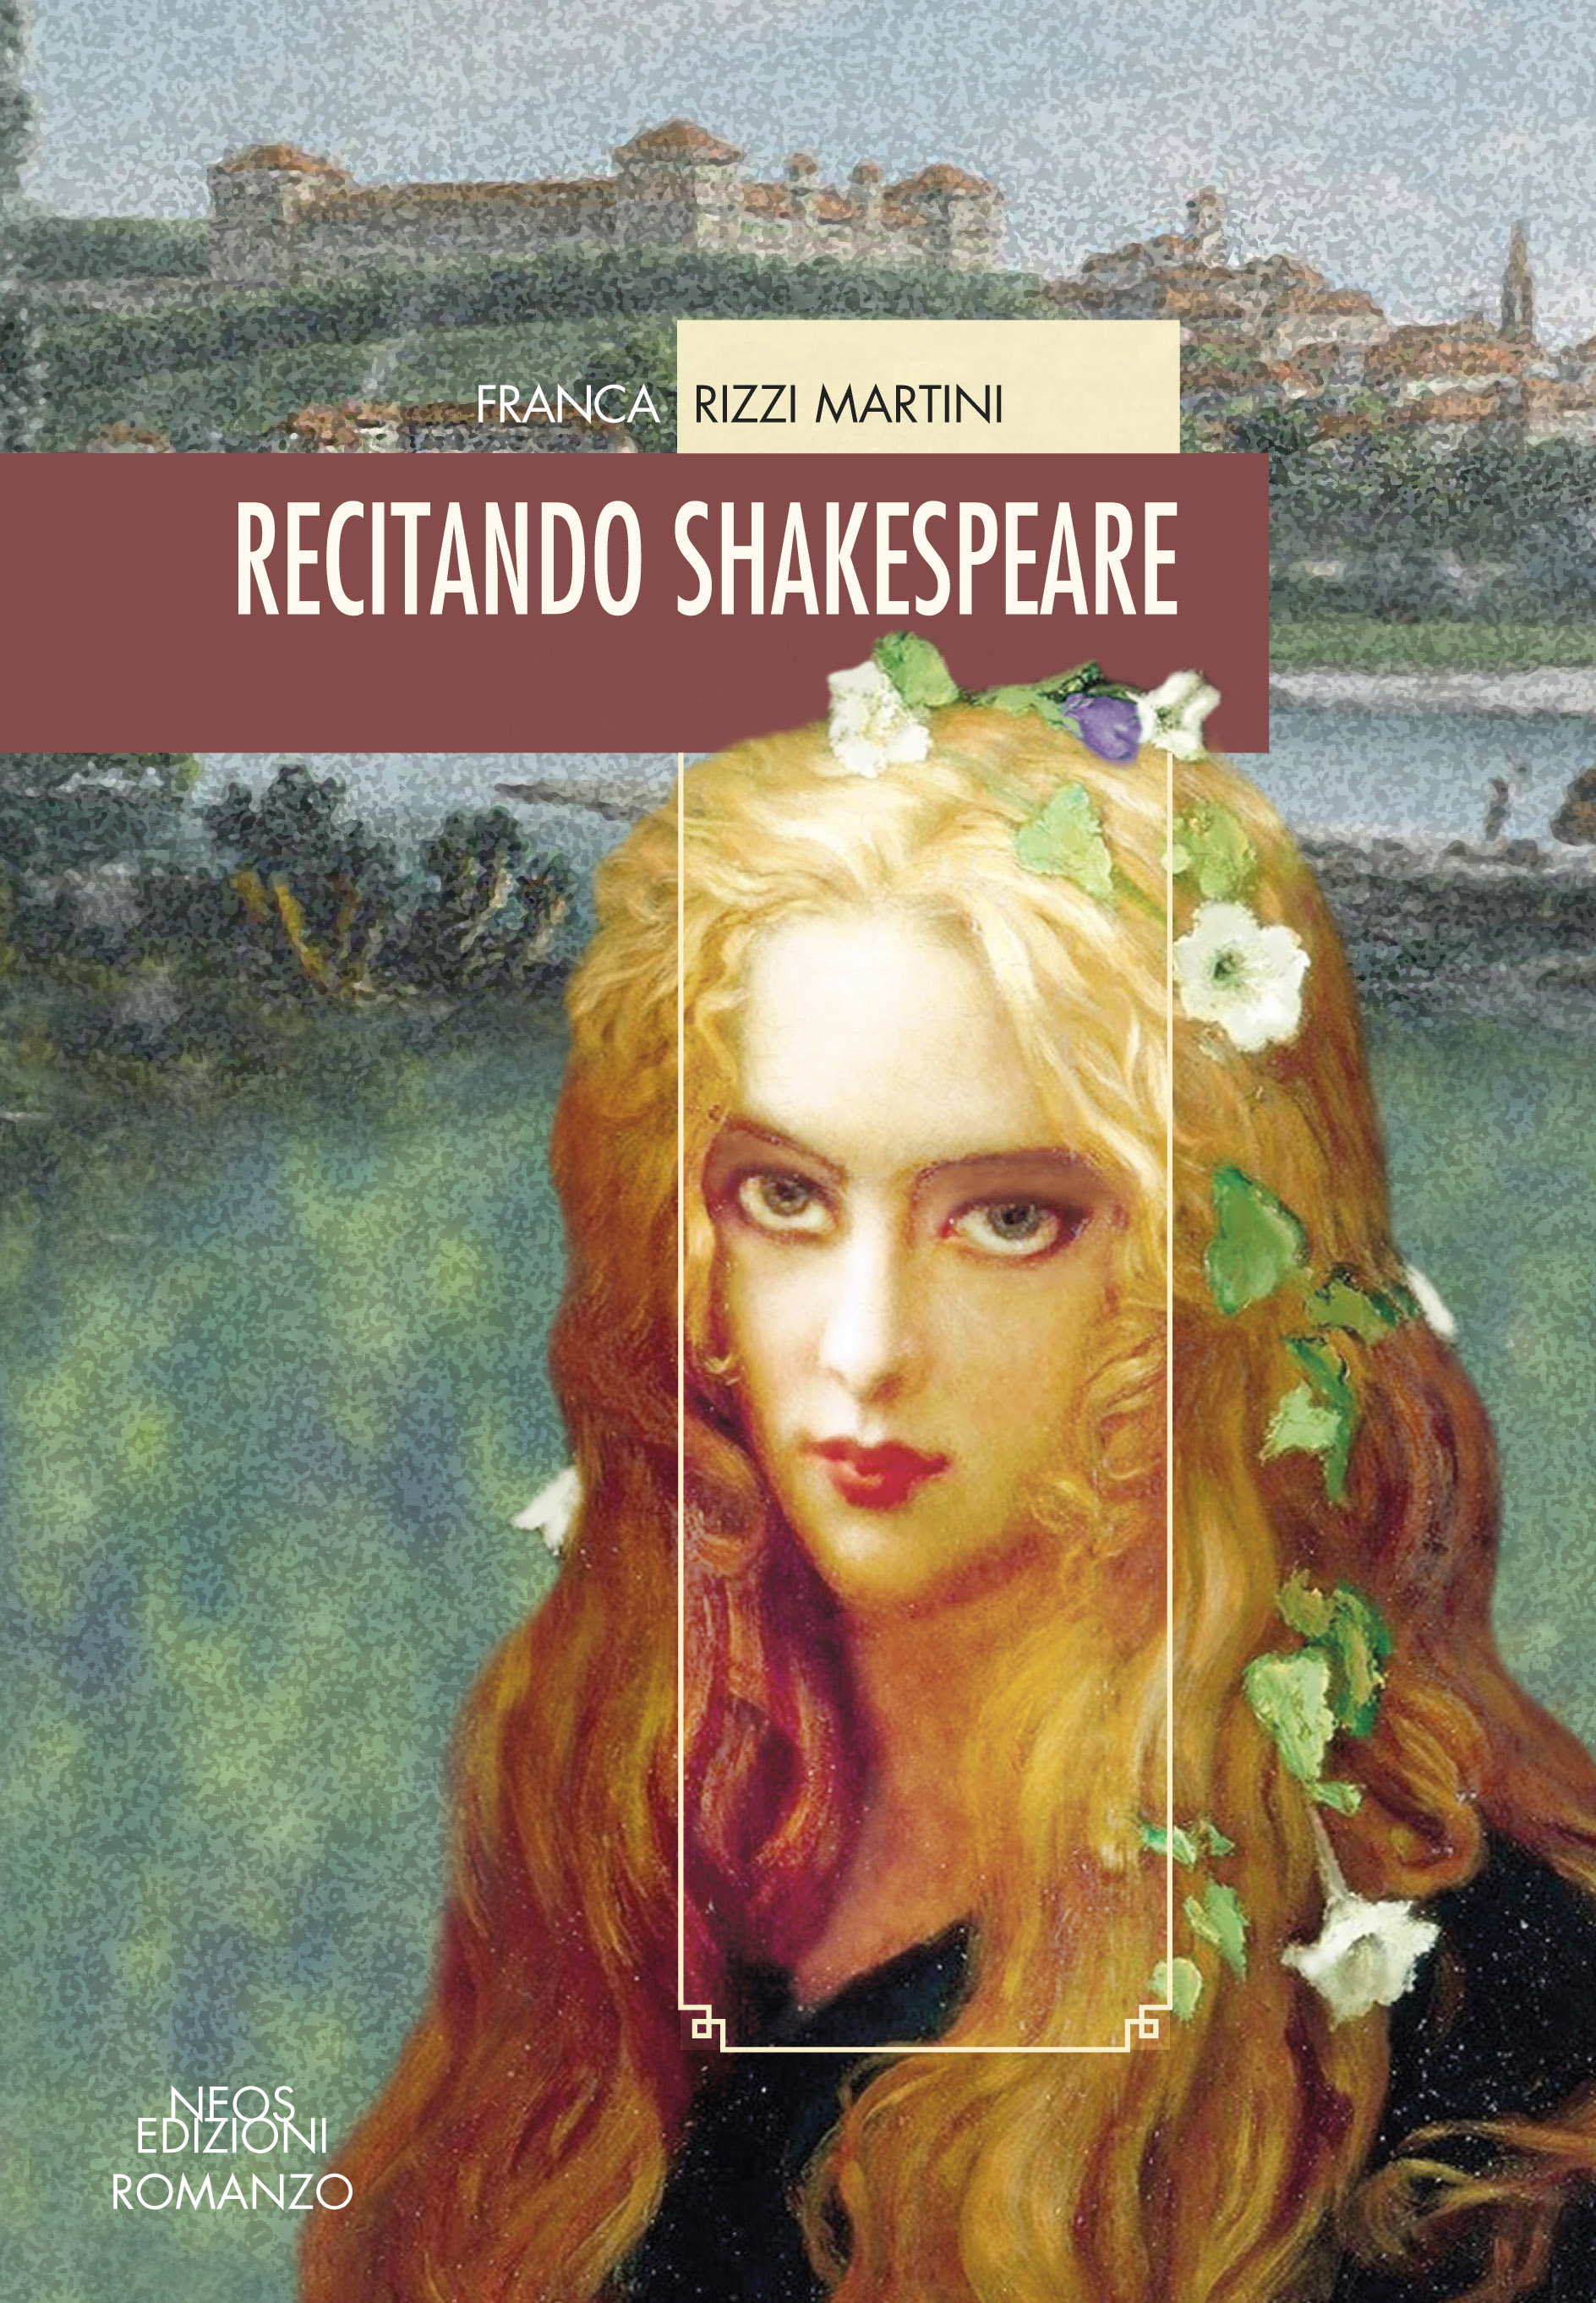 Recitando Sakespeare